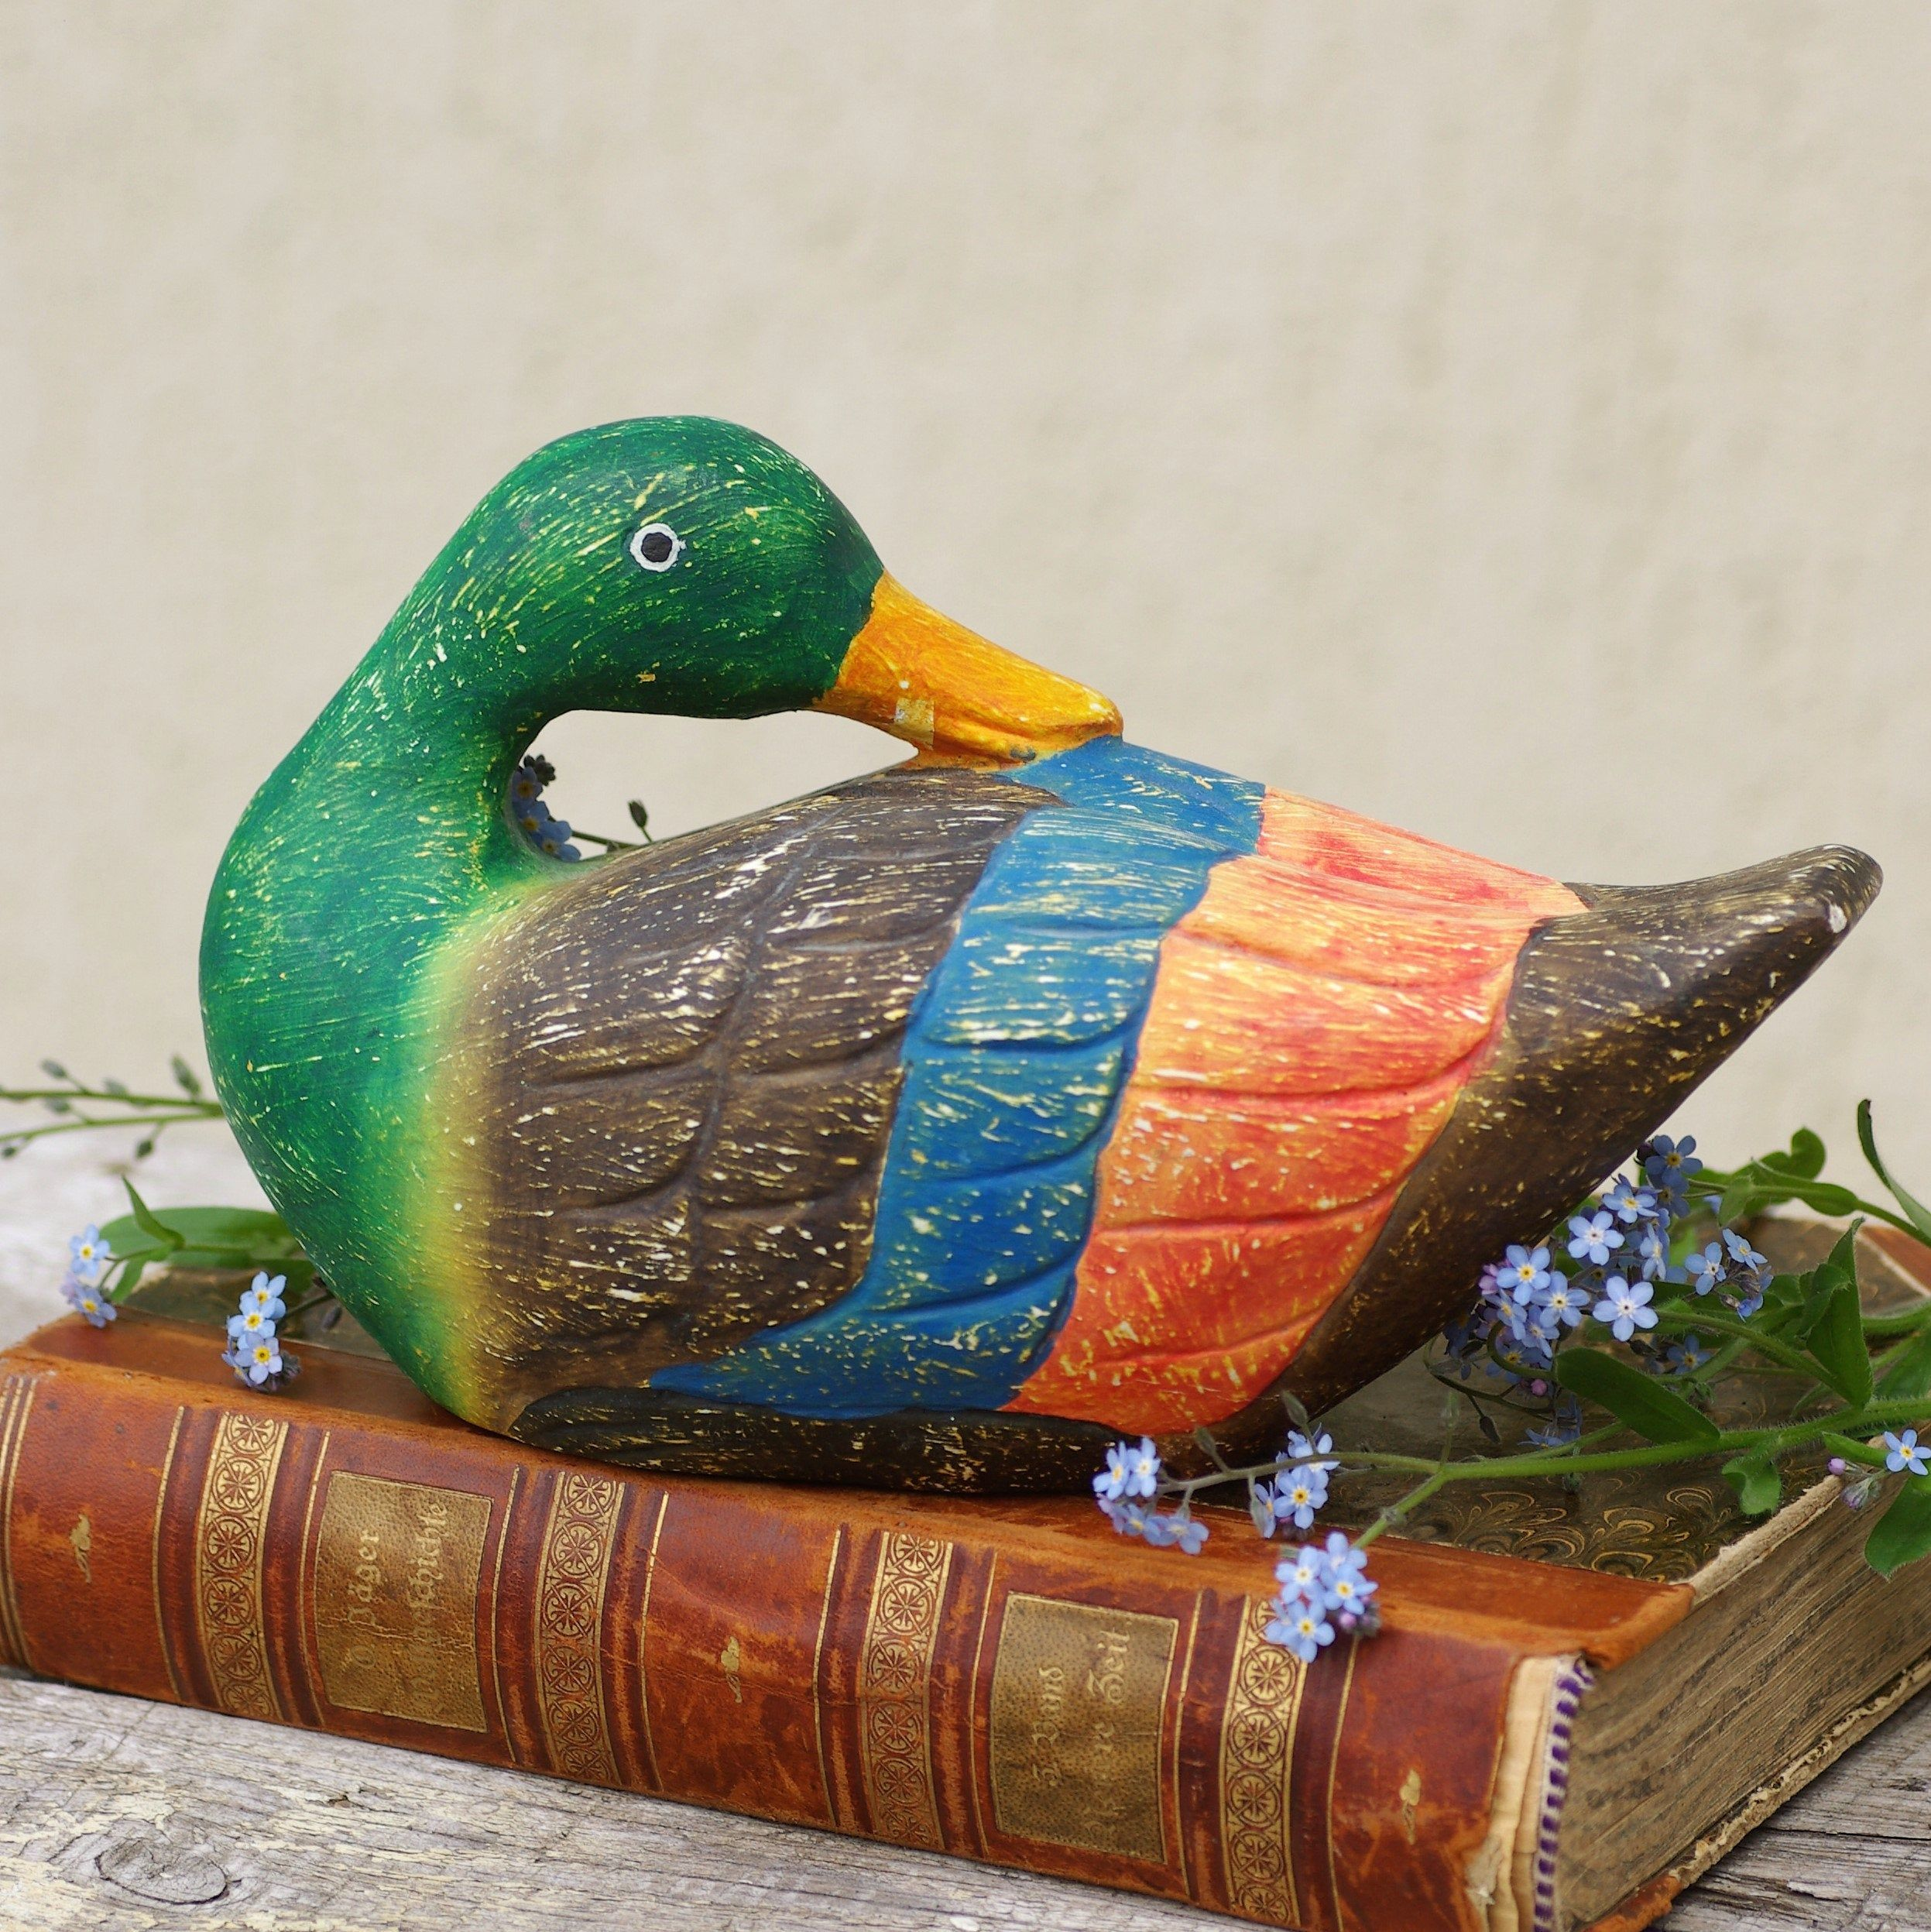 Wood Duck Carving Wooden Duck Decoy Hand Carved Bird Vintage Statue Sculpture Handcarved From Sweden Woodland Vintage Statues Wood Ducks Duck Decoys